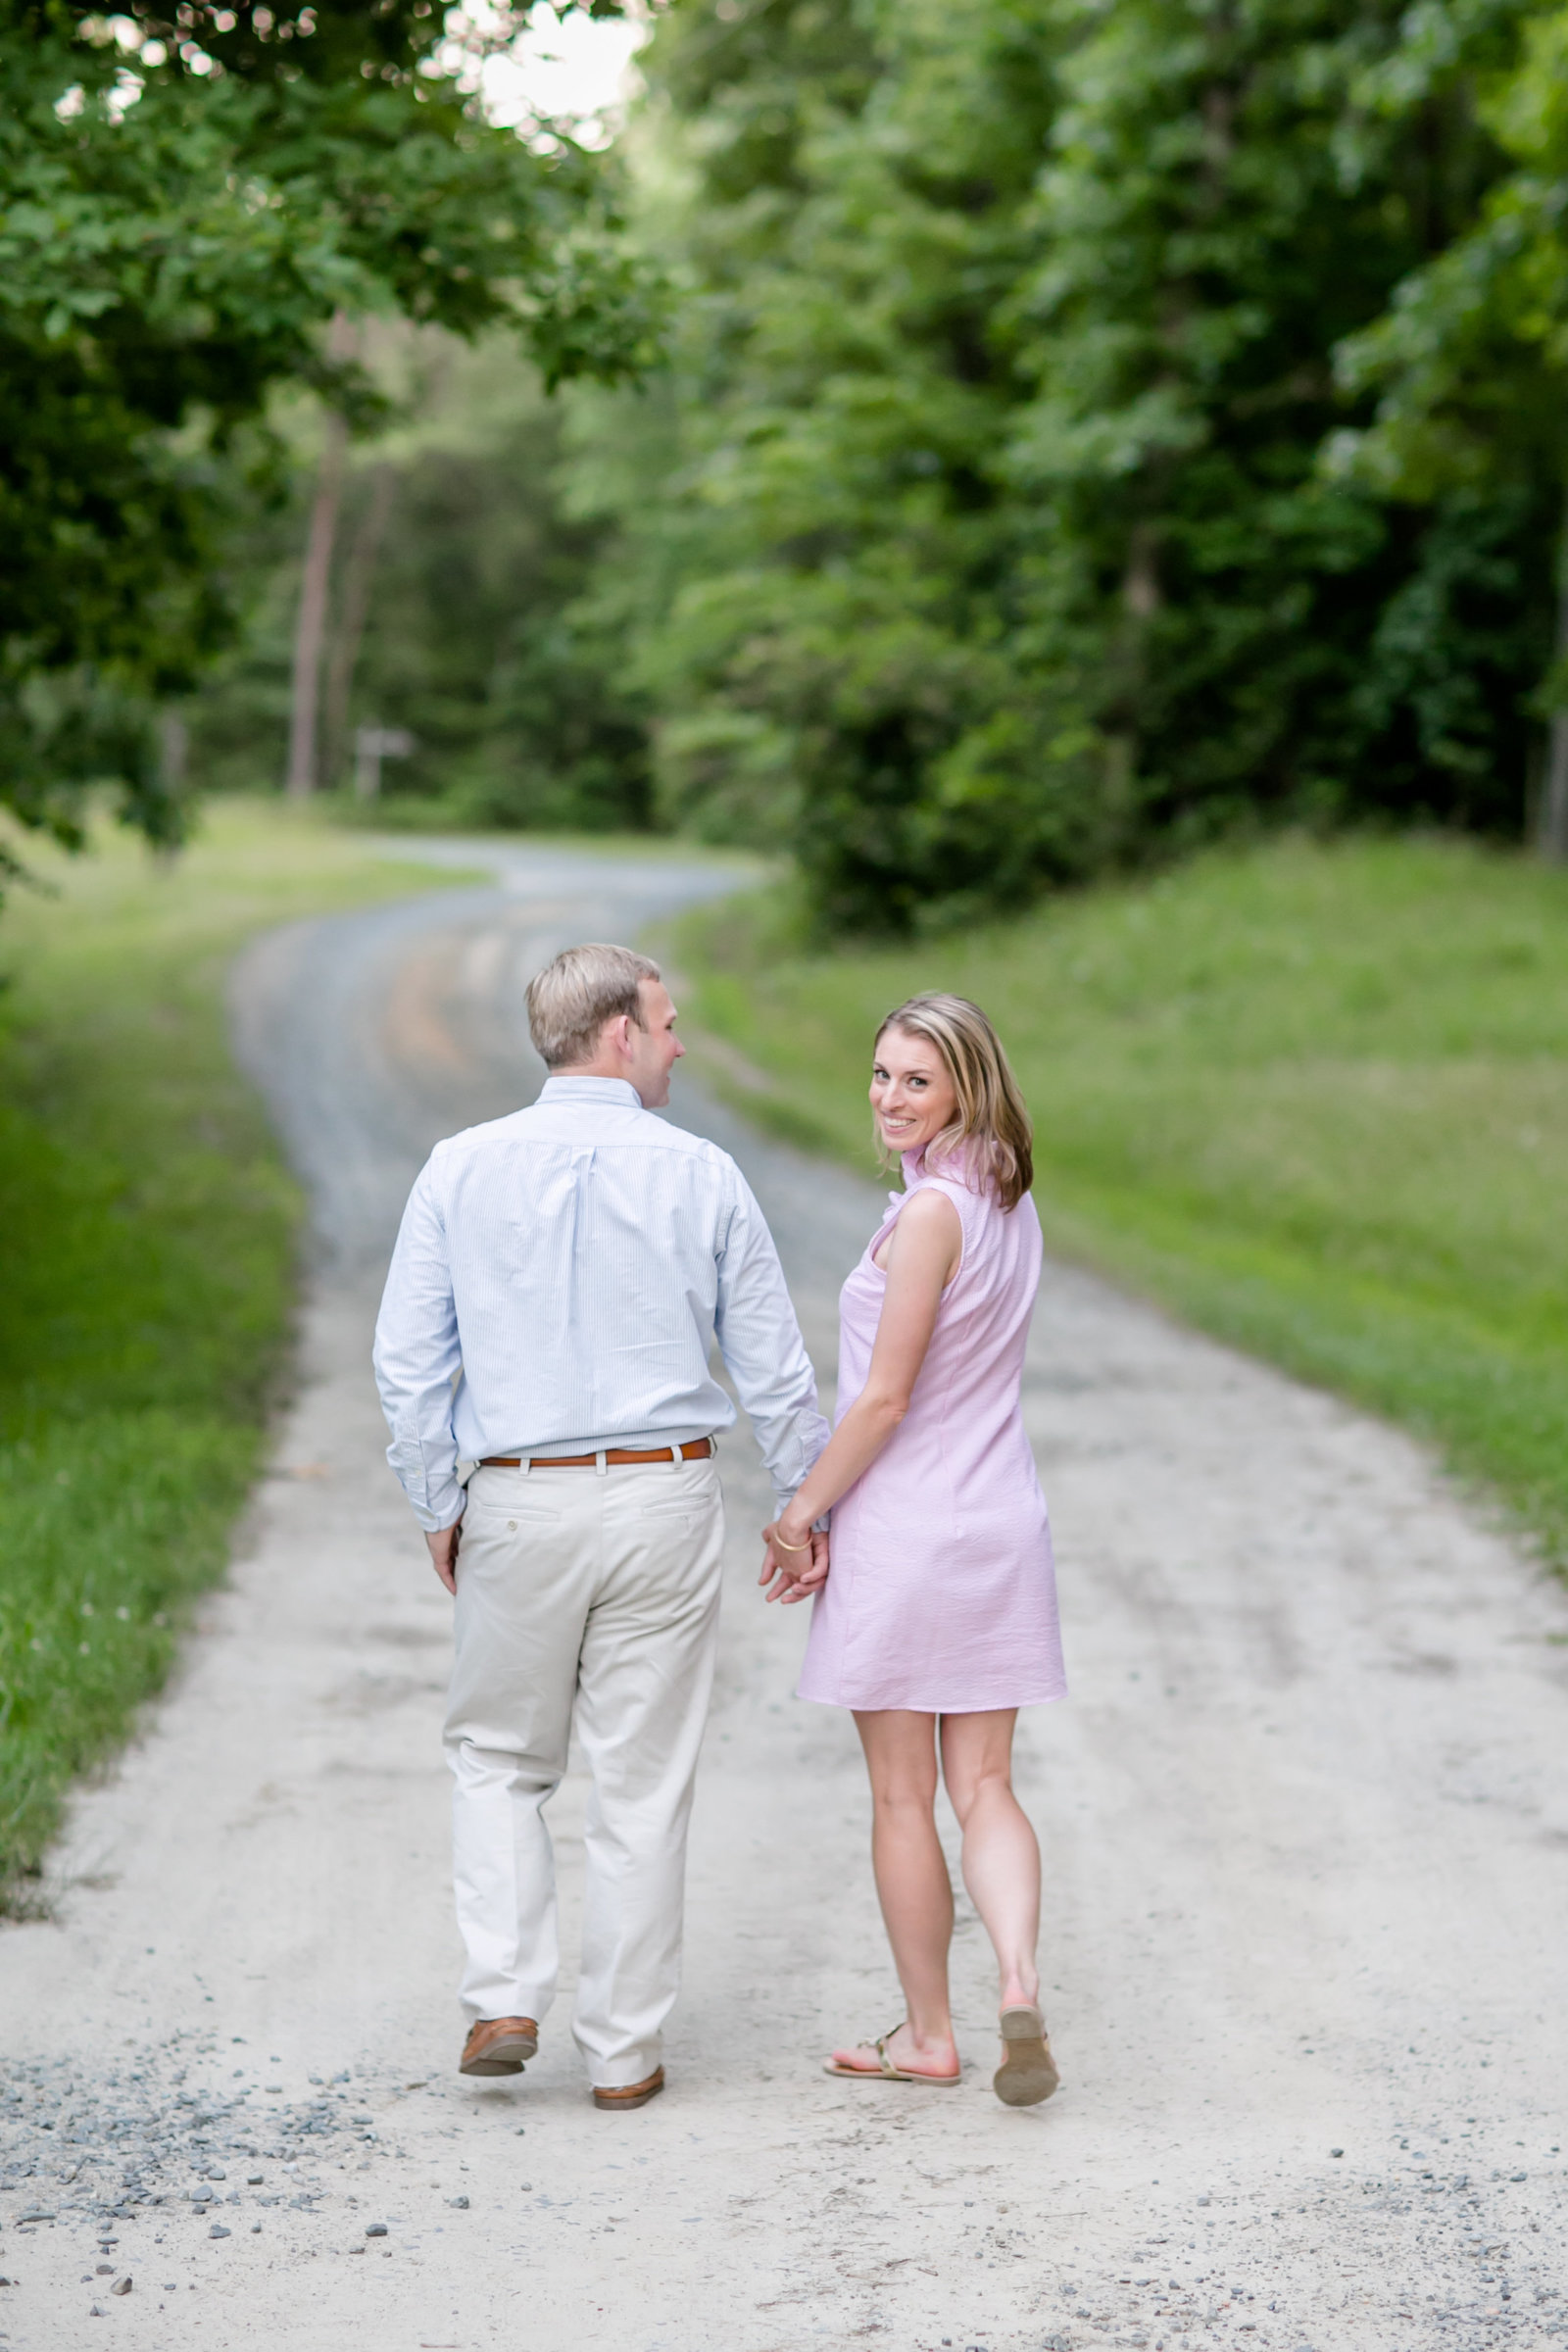 Carley Rehberg Photography - Engagement Photographer - Photo - 22